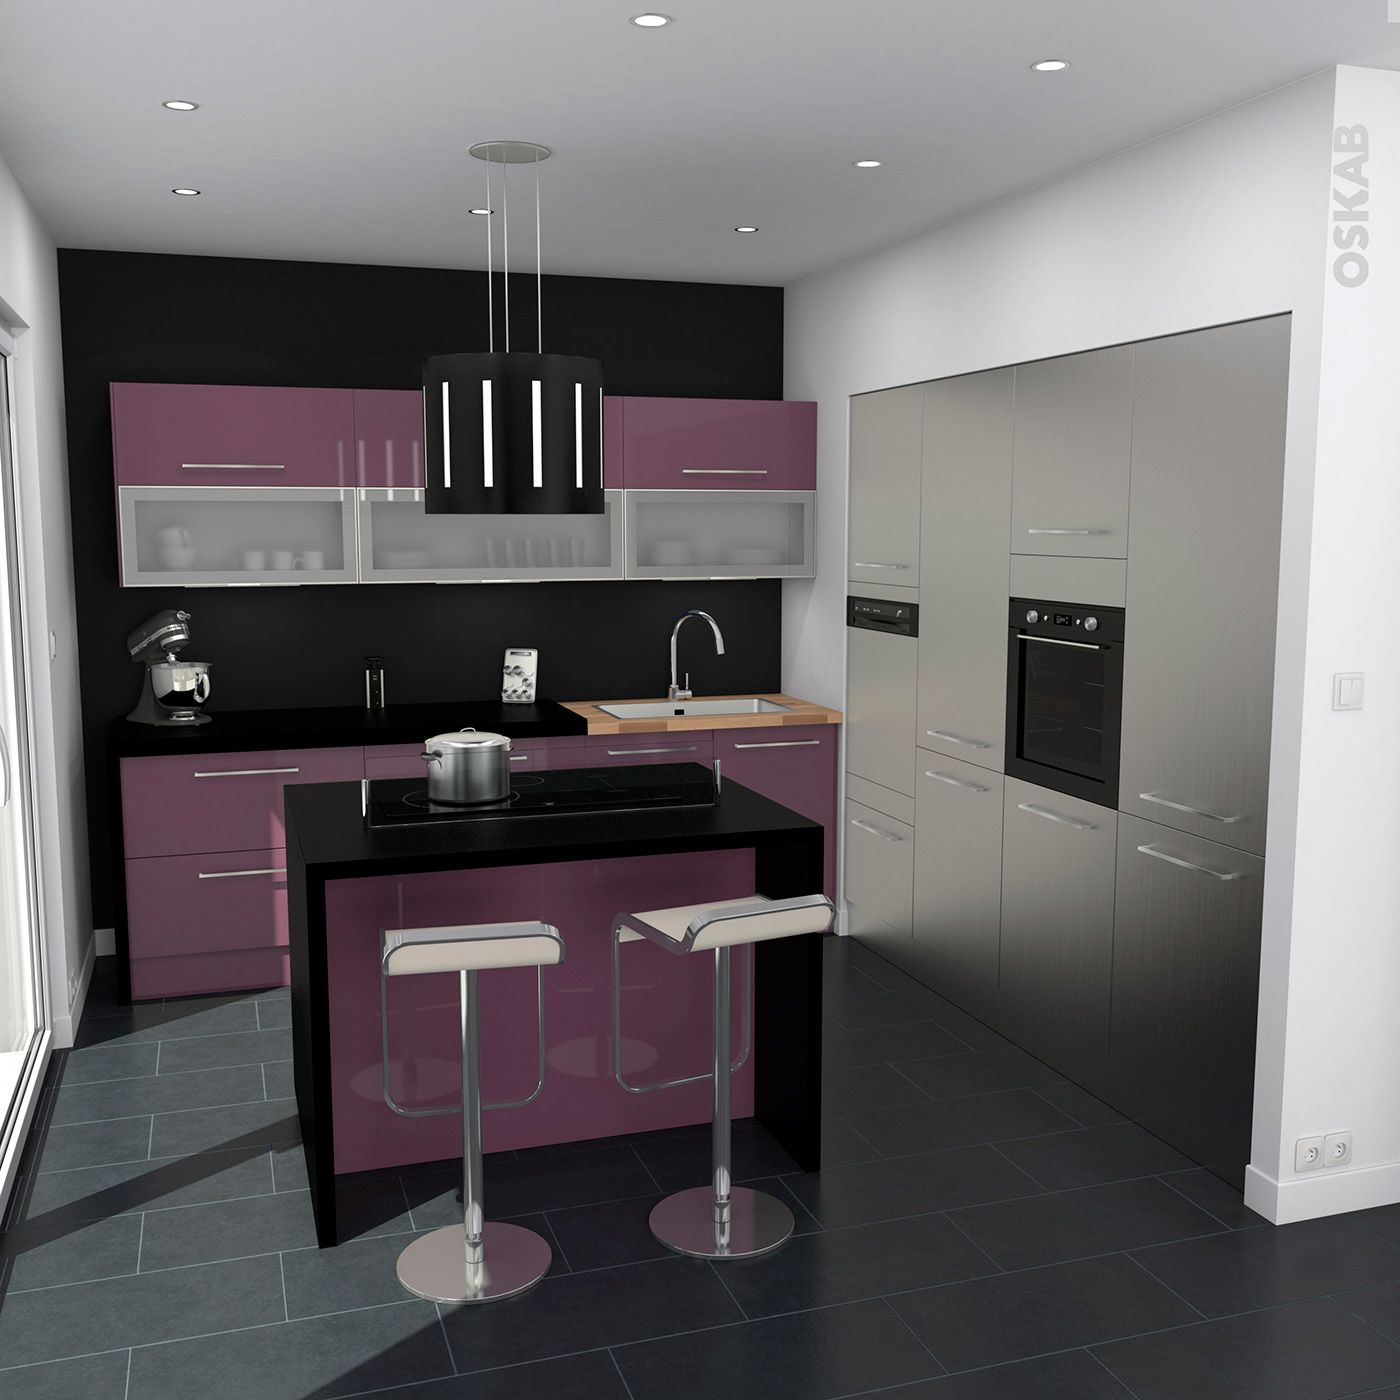 cuisine aubergine mod le keria aubergine brillant collations cuisine et design. Black Bedroom Furniture Sets. Home Design Ideas